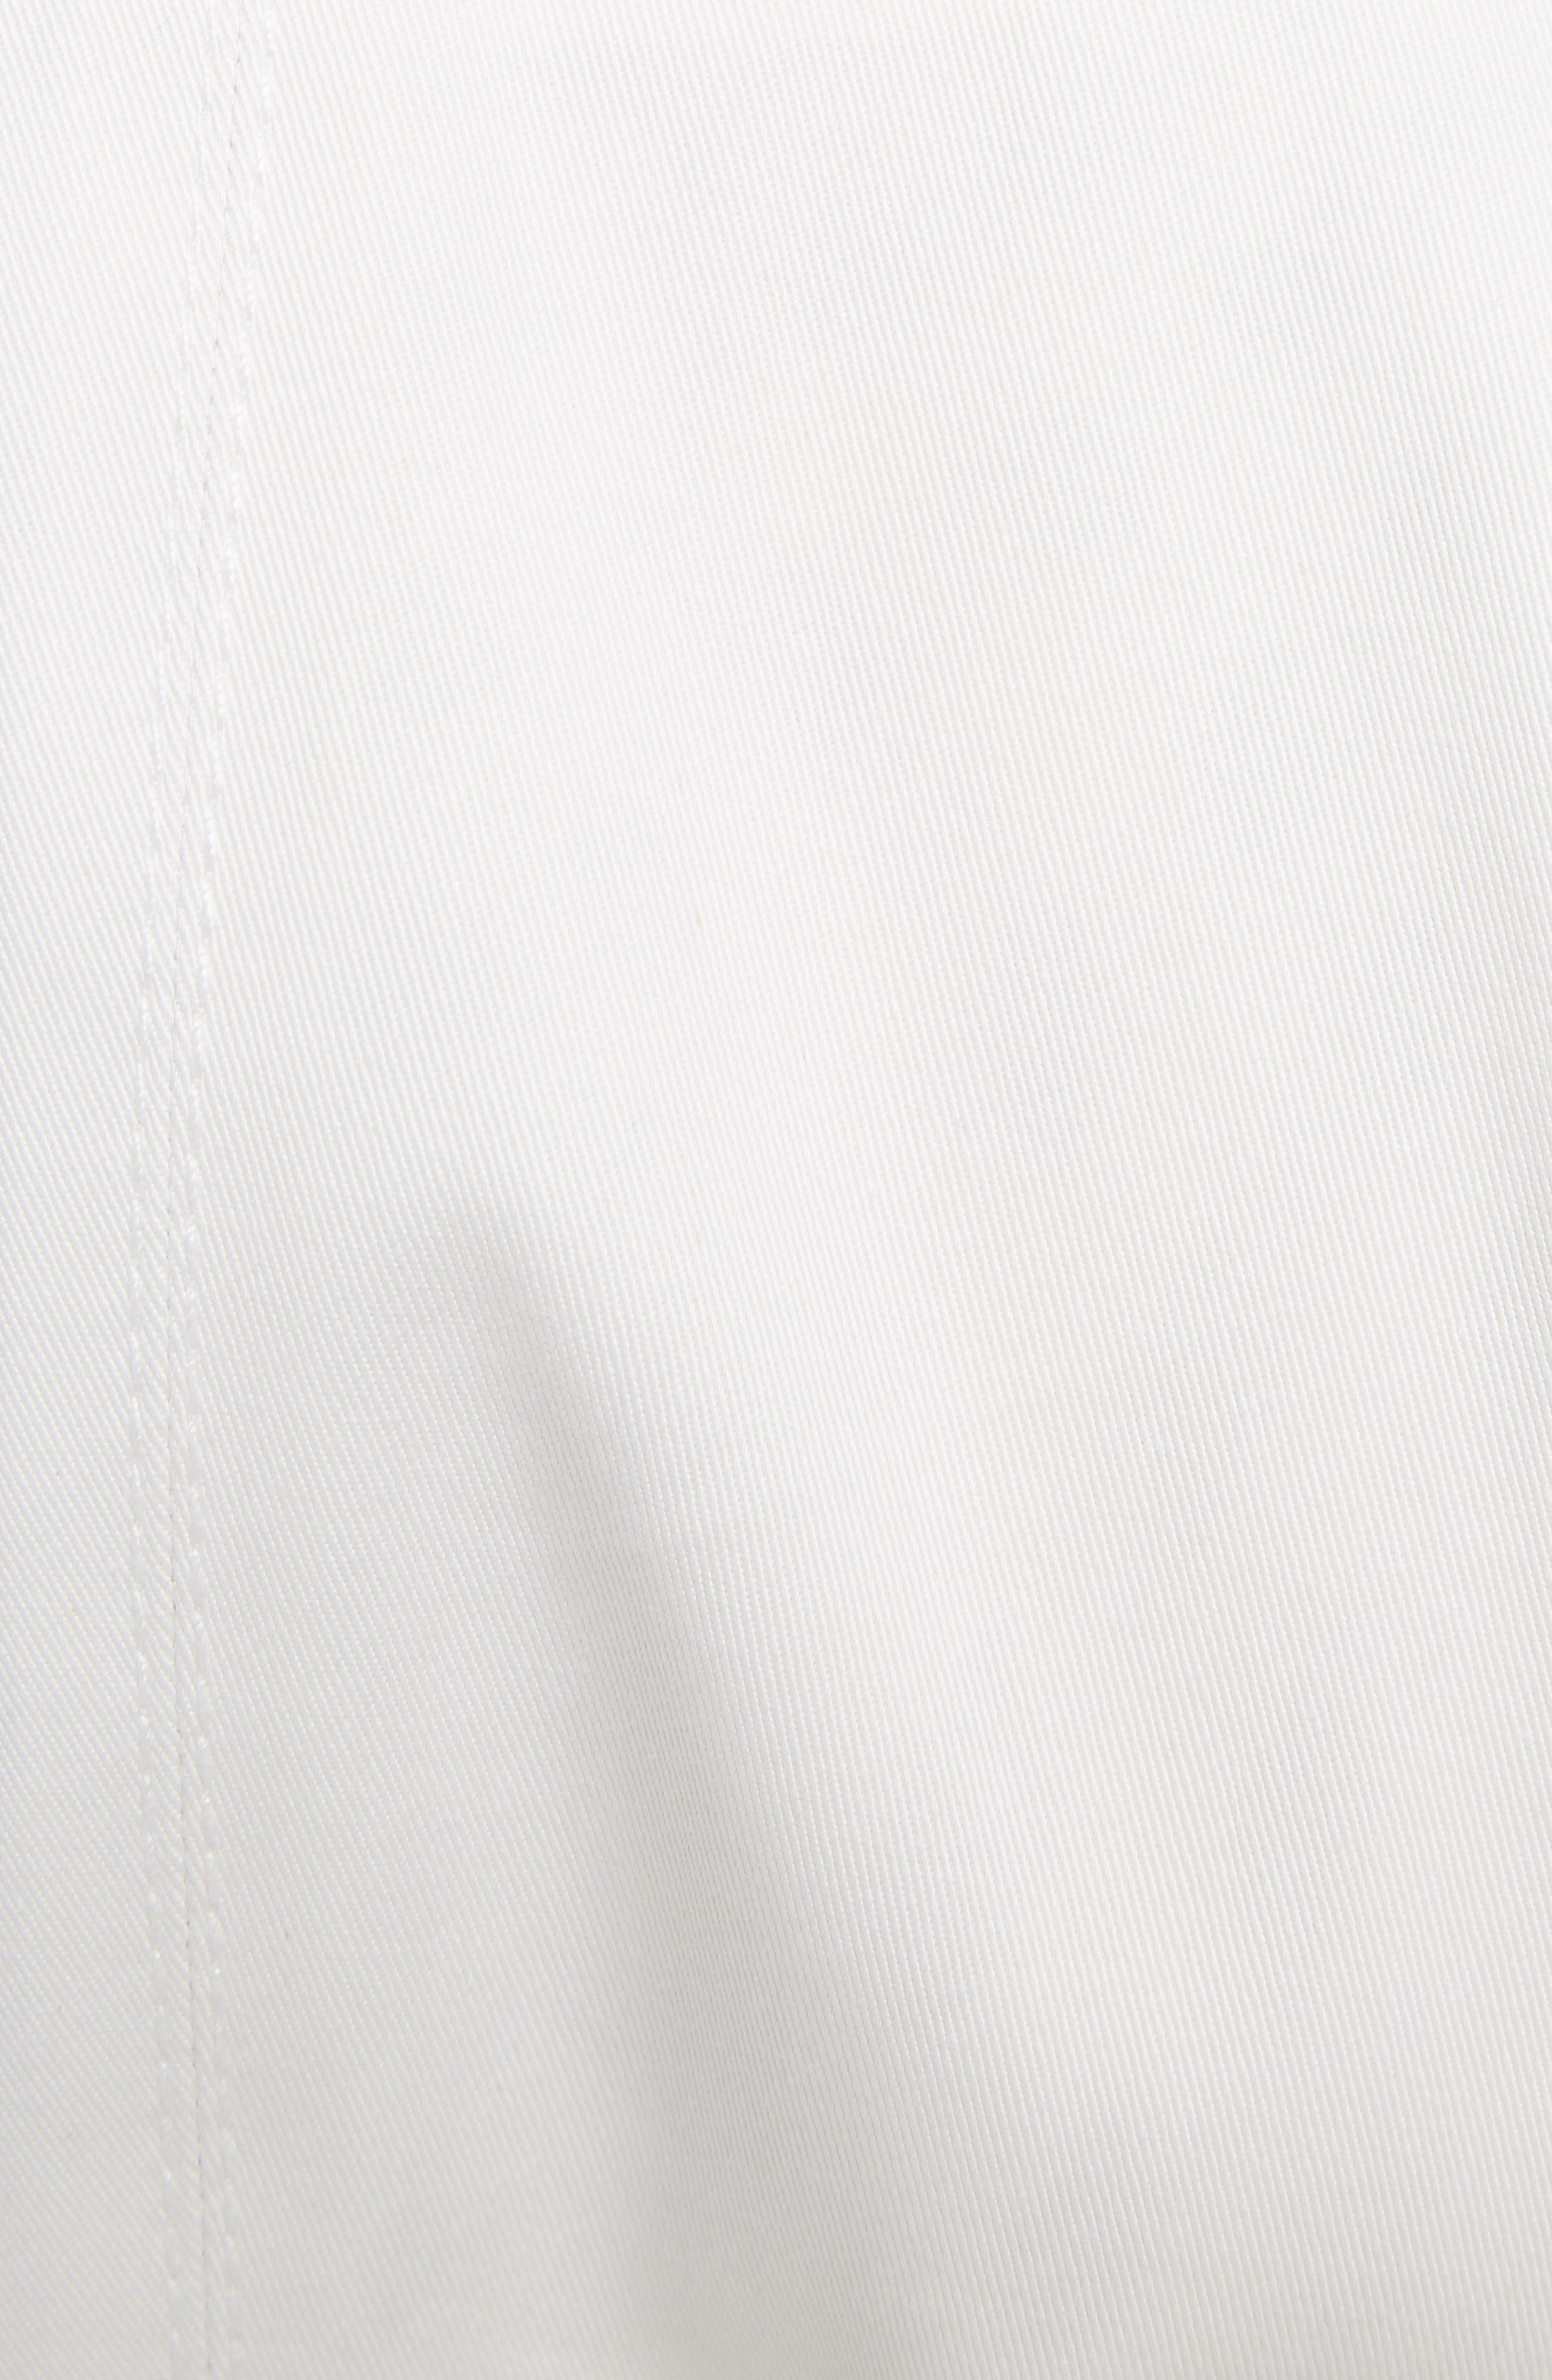 Olesia Removable Sleeve Belted Coat,                             Alternate thumbnail 5, color,                             Dirty White